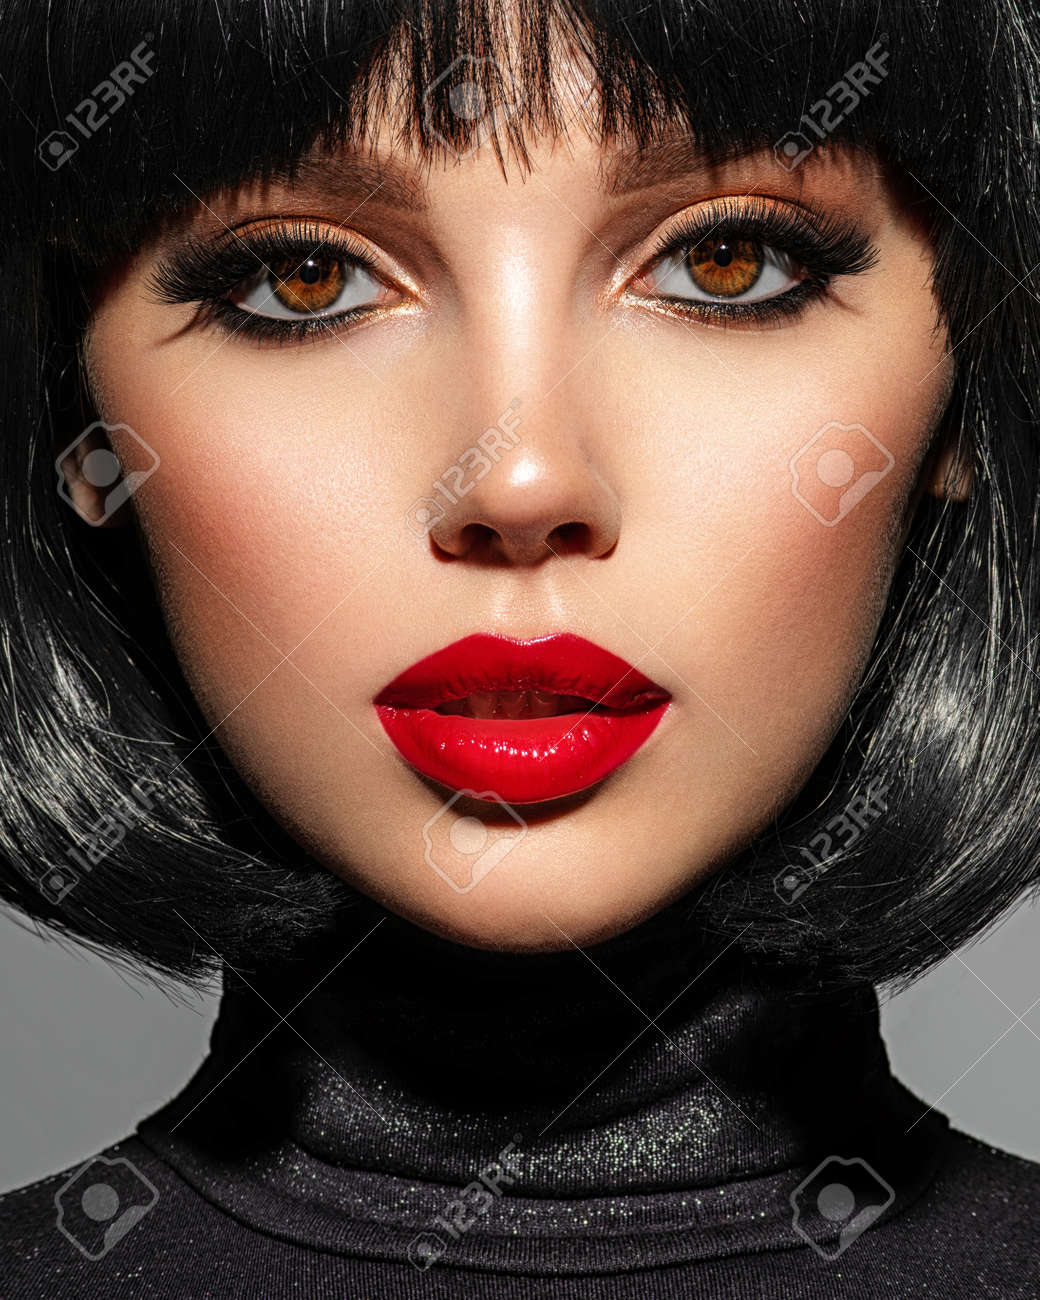 Beautiful brunette girl with red lips and black bob hairstyle. Pretty young woman with black hair. Closeup portrait of a model with bright makeup on a face. Fashion portrait of a pretty lady. - 166421654